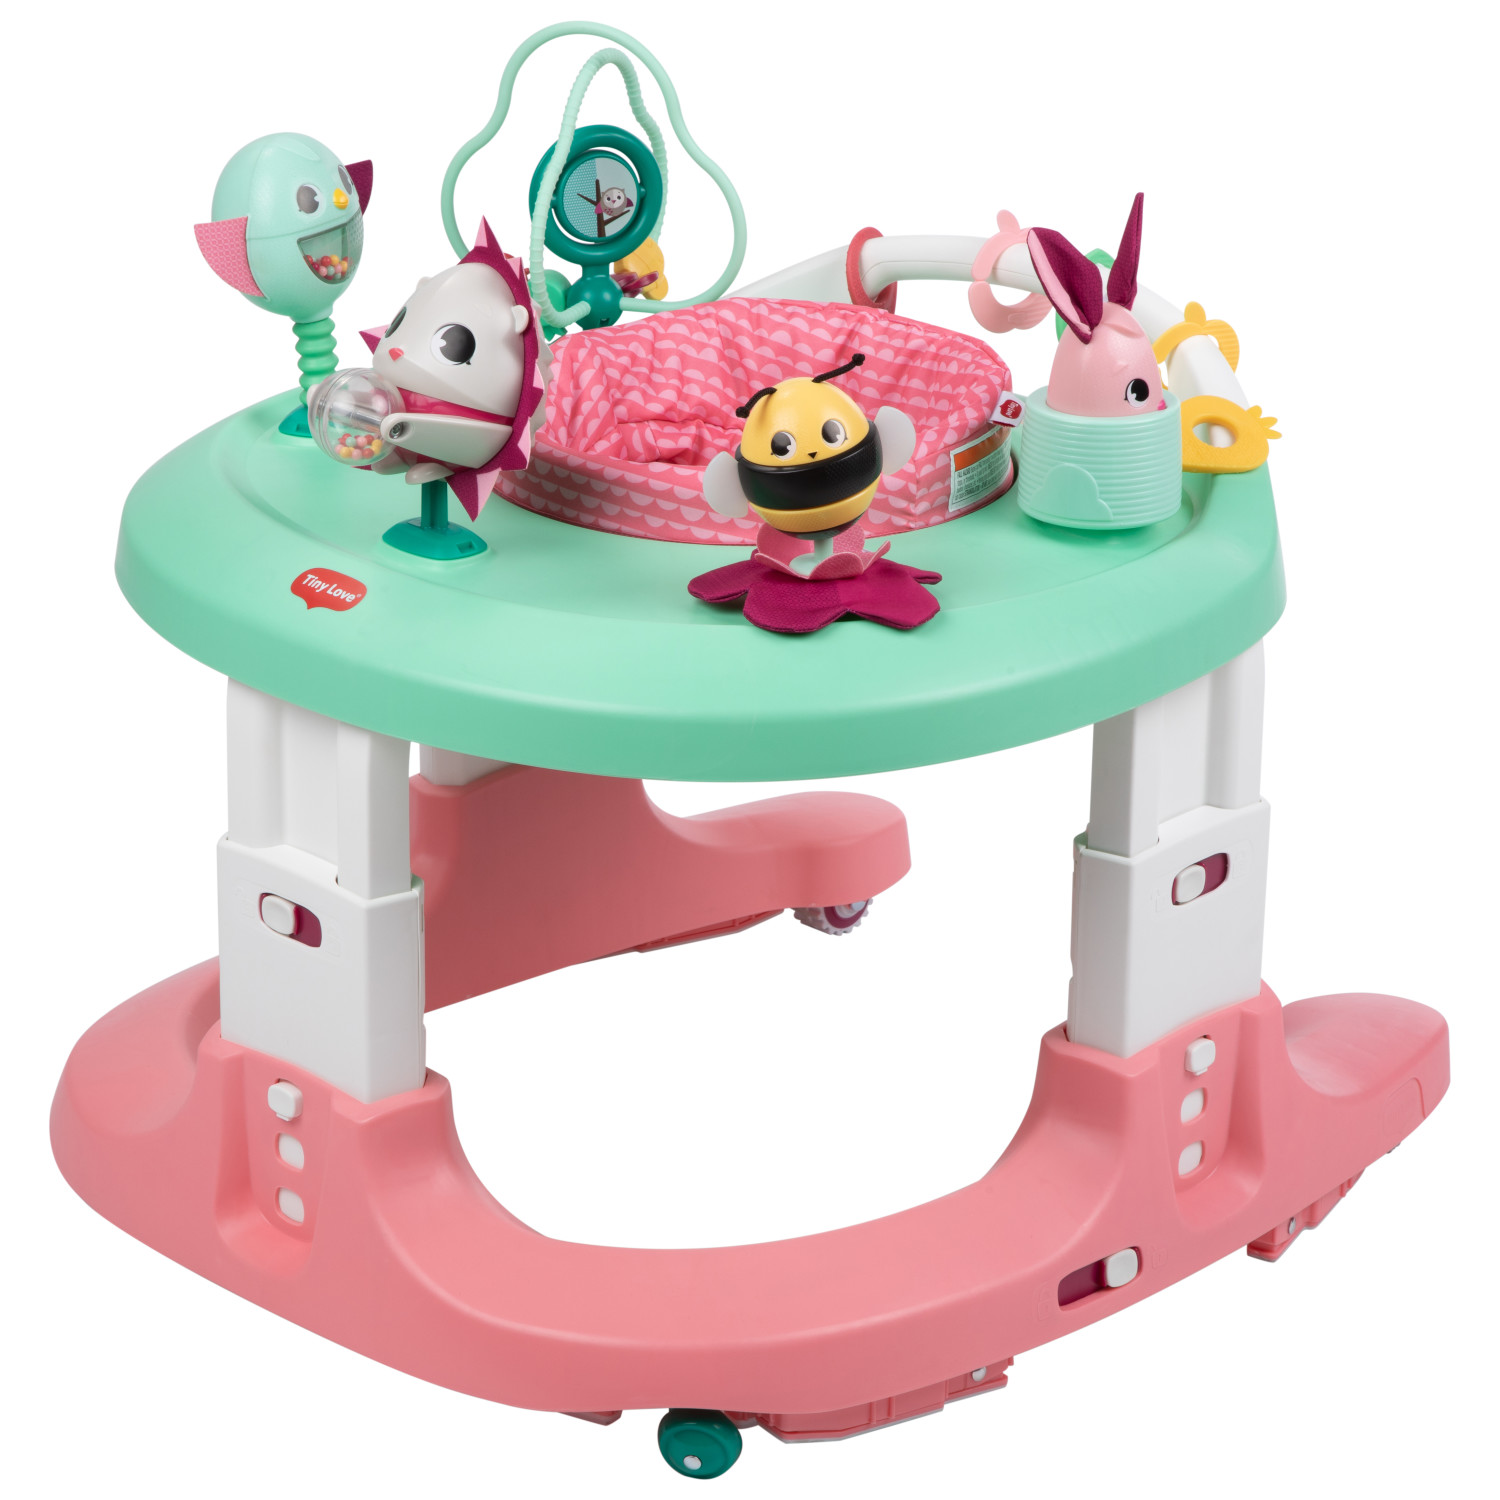 Tiny Love 4-in-1 Here I Grow Baby Walker and Mobile Activity